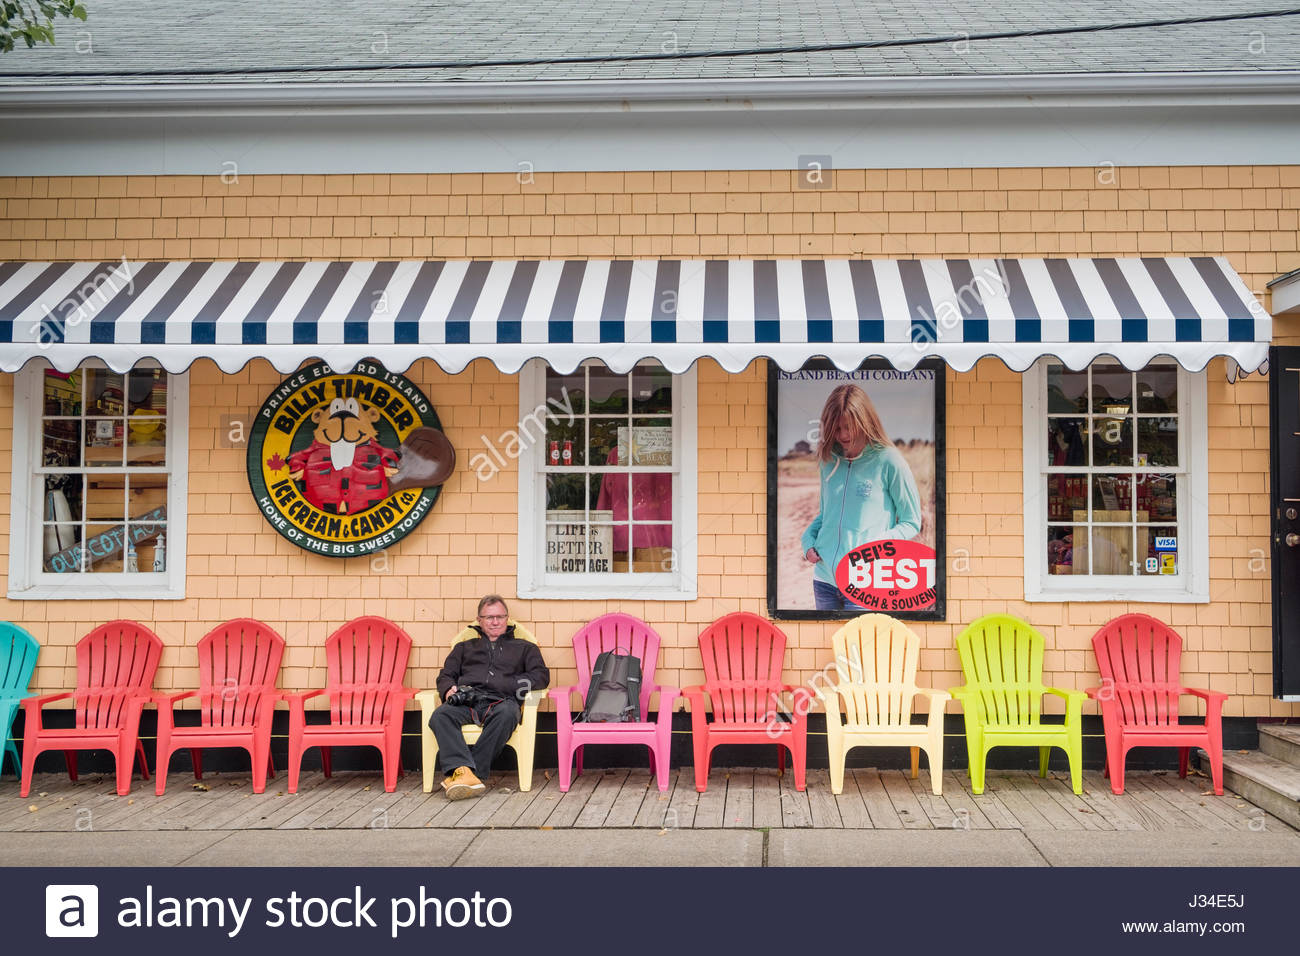 Man Sitting On Plastic Chair Among Row Of Colorful Plastic Chairs,  Charlottetown, Prince Edward Island, Canada